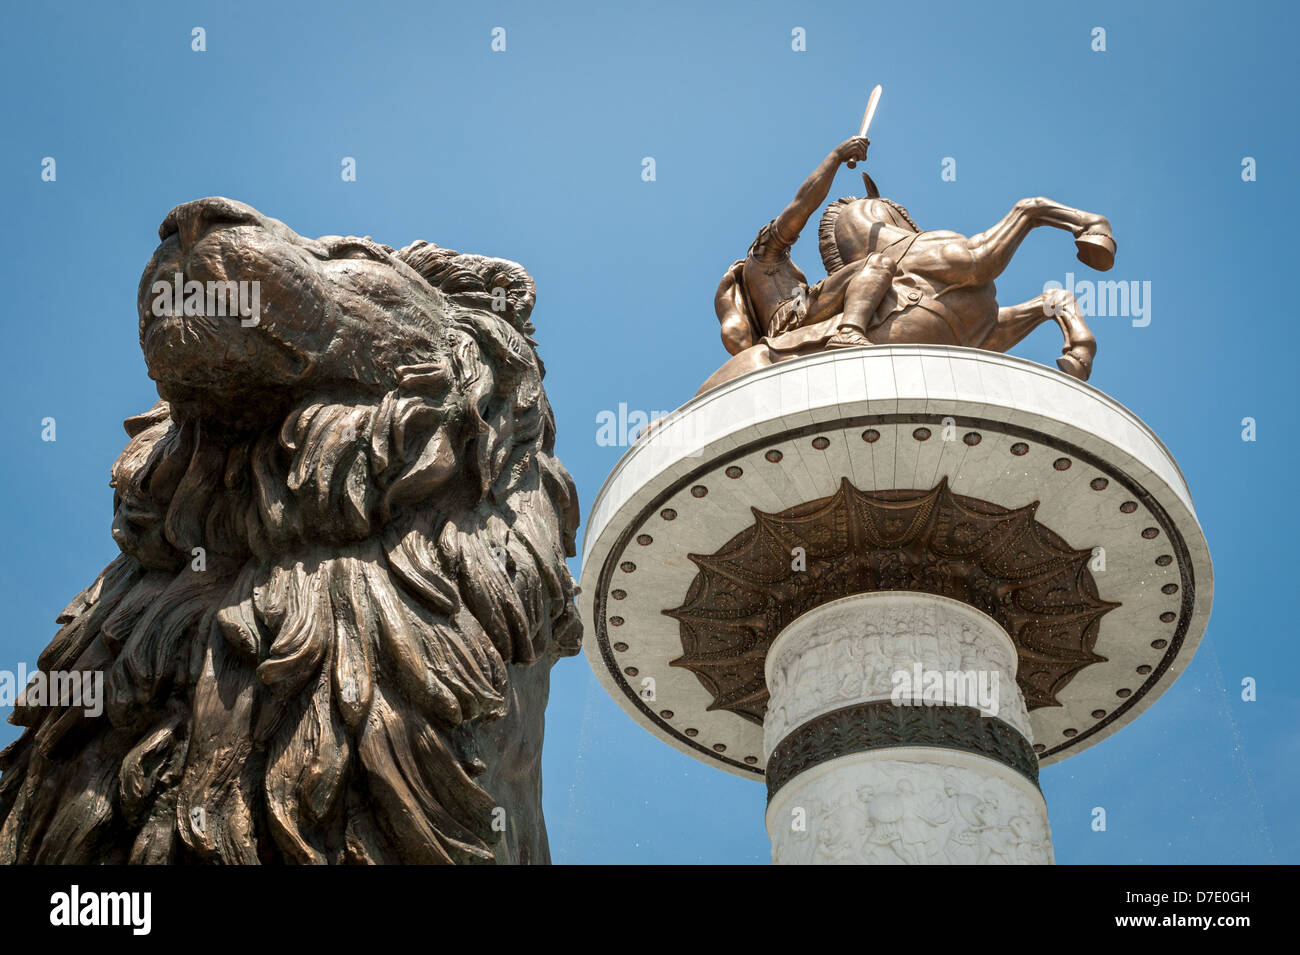 Statue of Alexander the Great with statue of lion in front of it, in Skopje, Macedonia (FYROM) - Stock Image